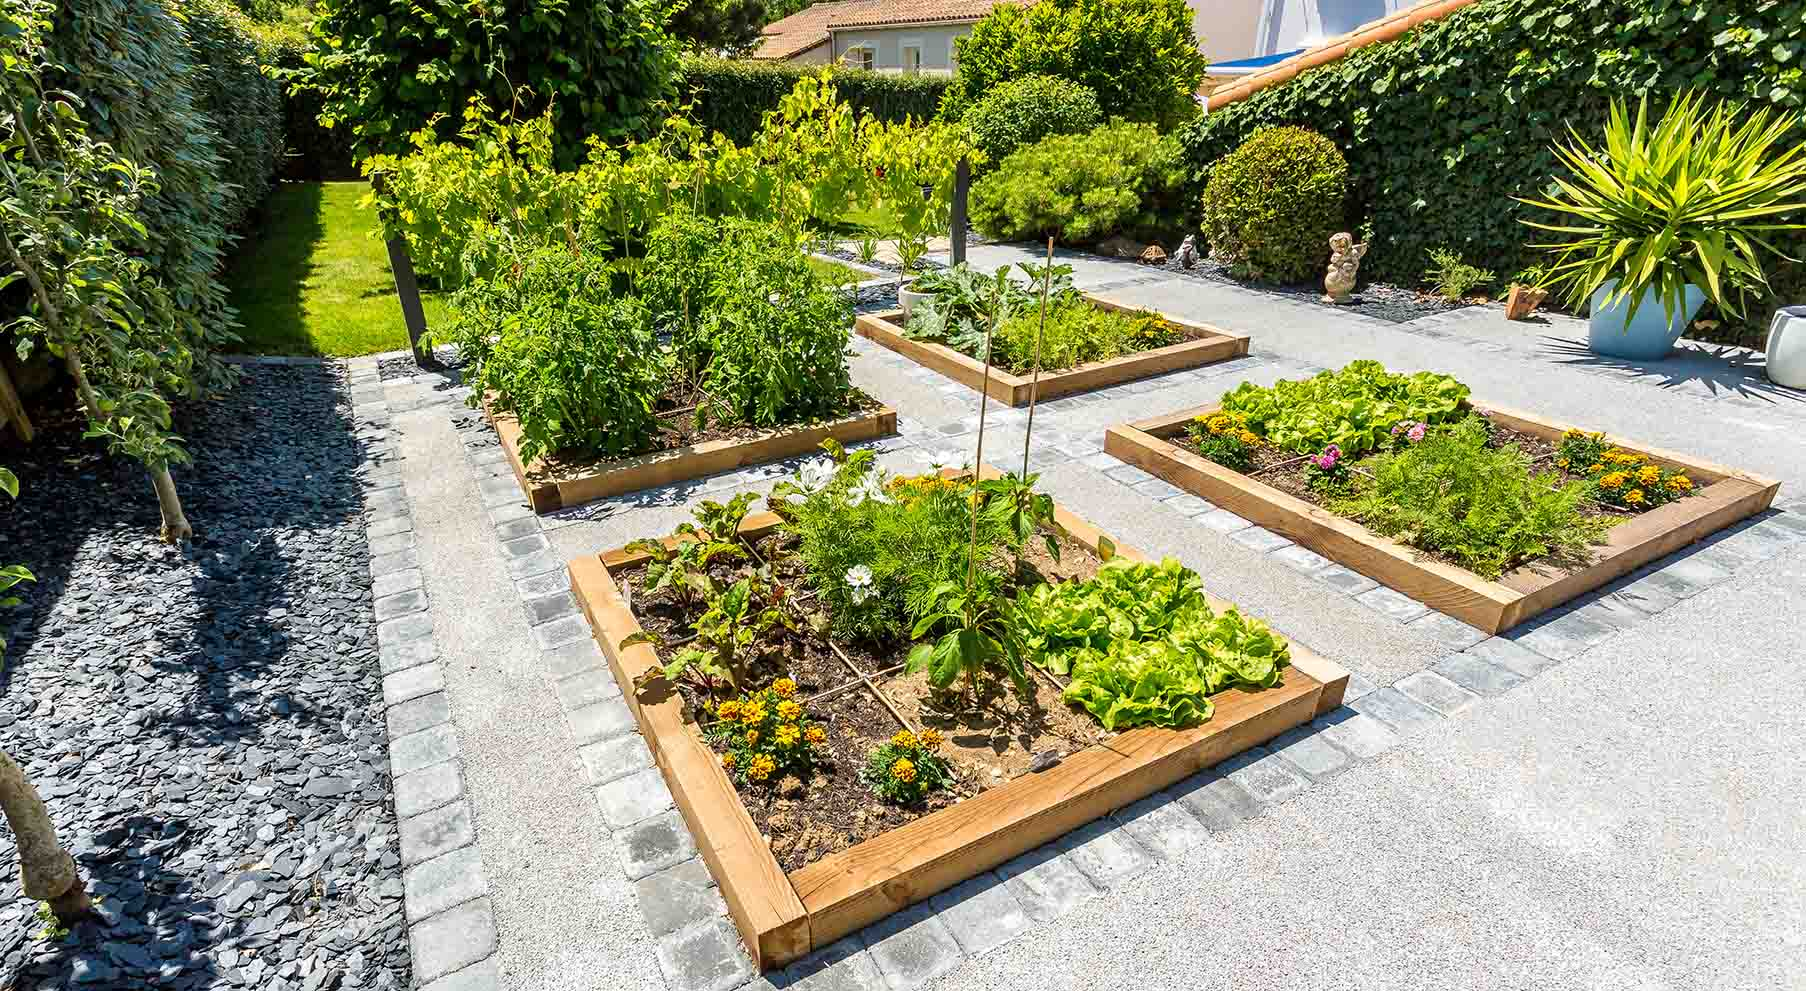 Decoration jardin potager qj45 jornalagora - Amenagement jardin idee ...